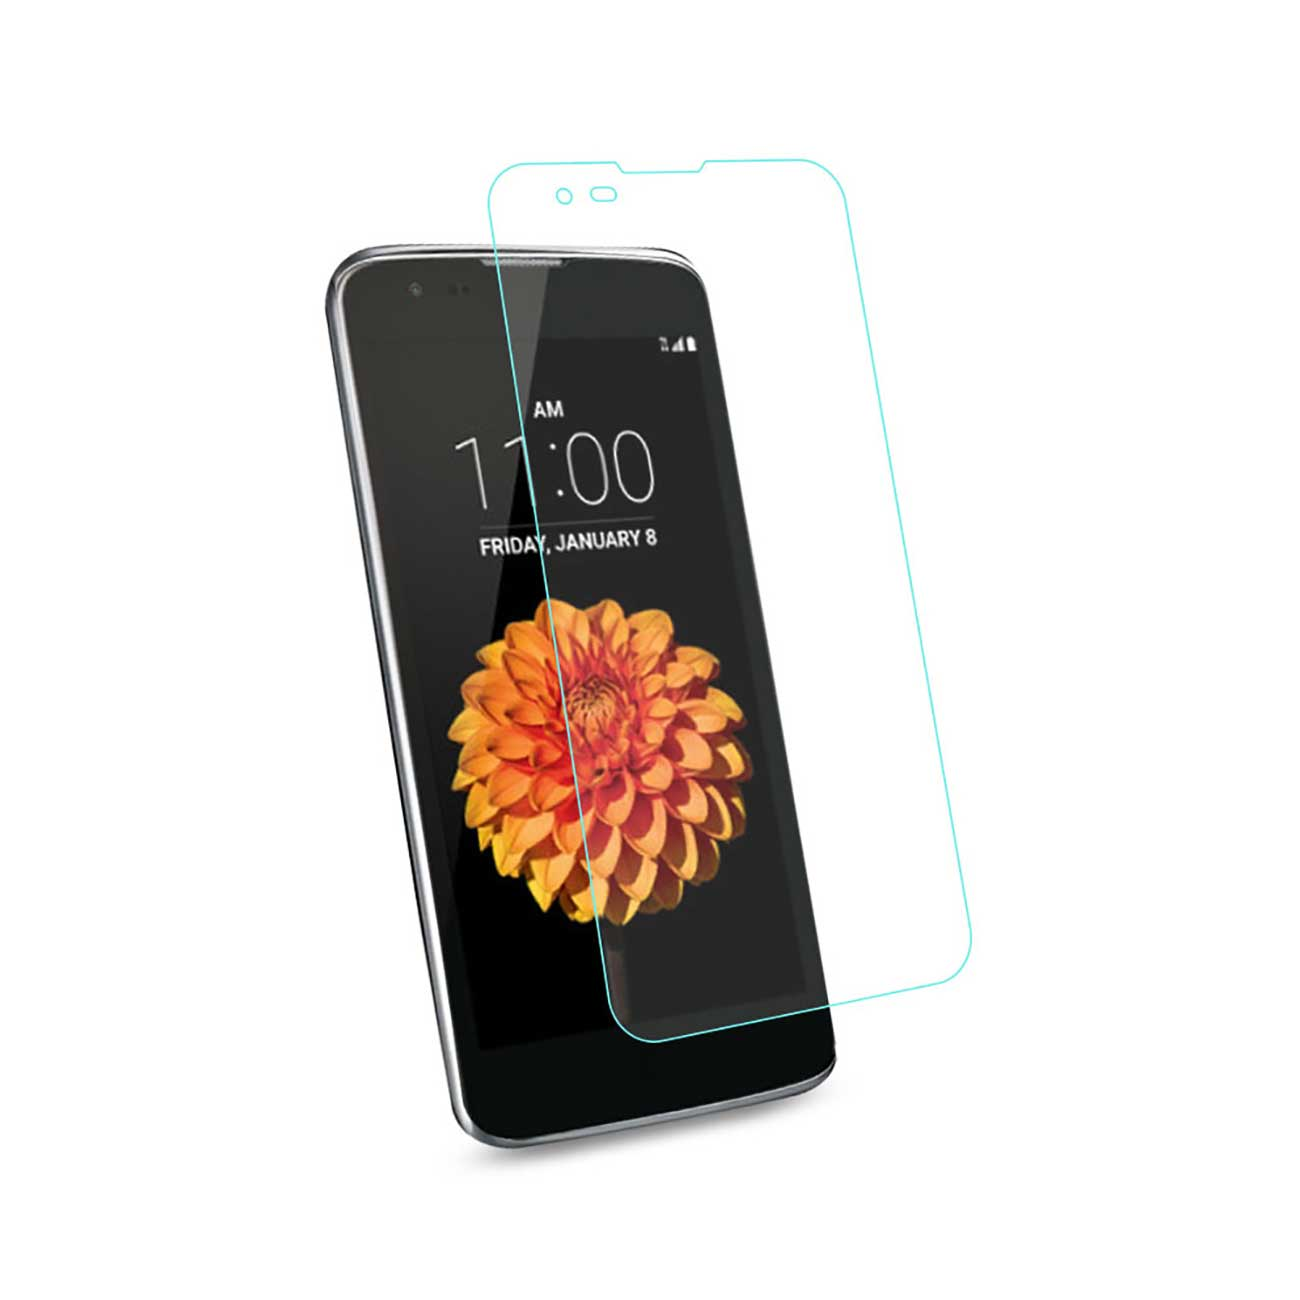 REIKO LG K7 TEMPERED GLASS SCREEN PROTECTOR INCLEAR